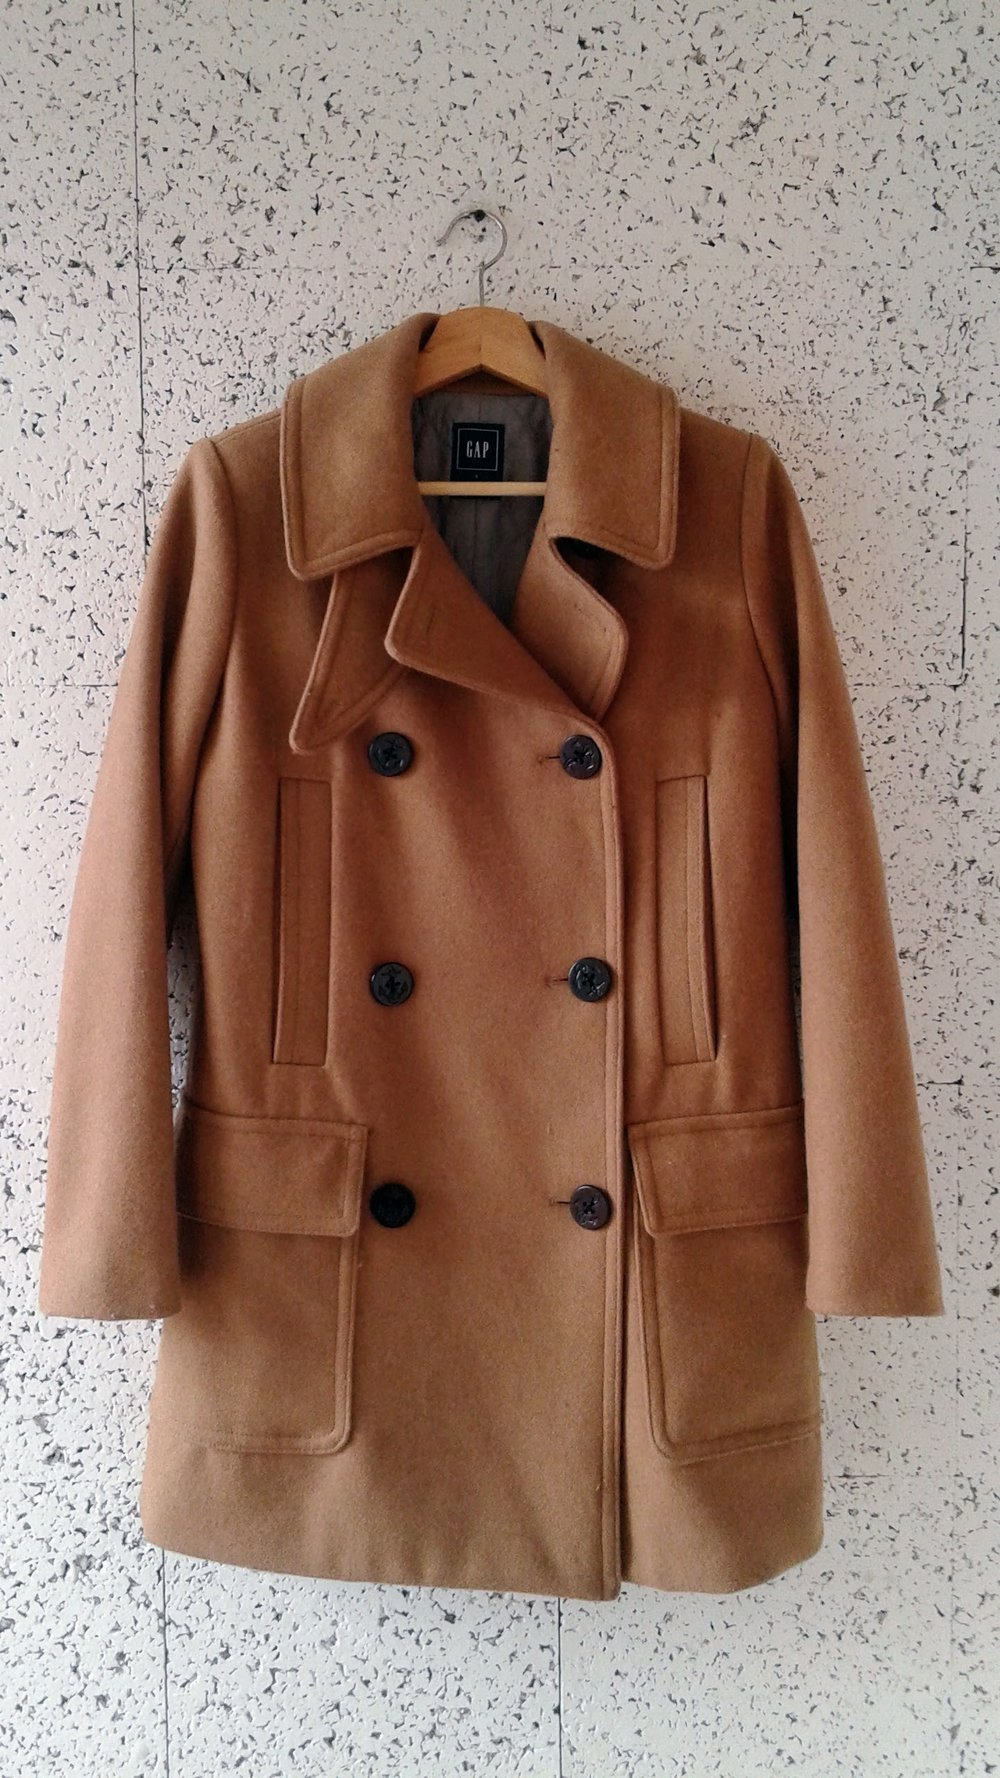 Gap coat; Size S, $62